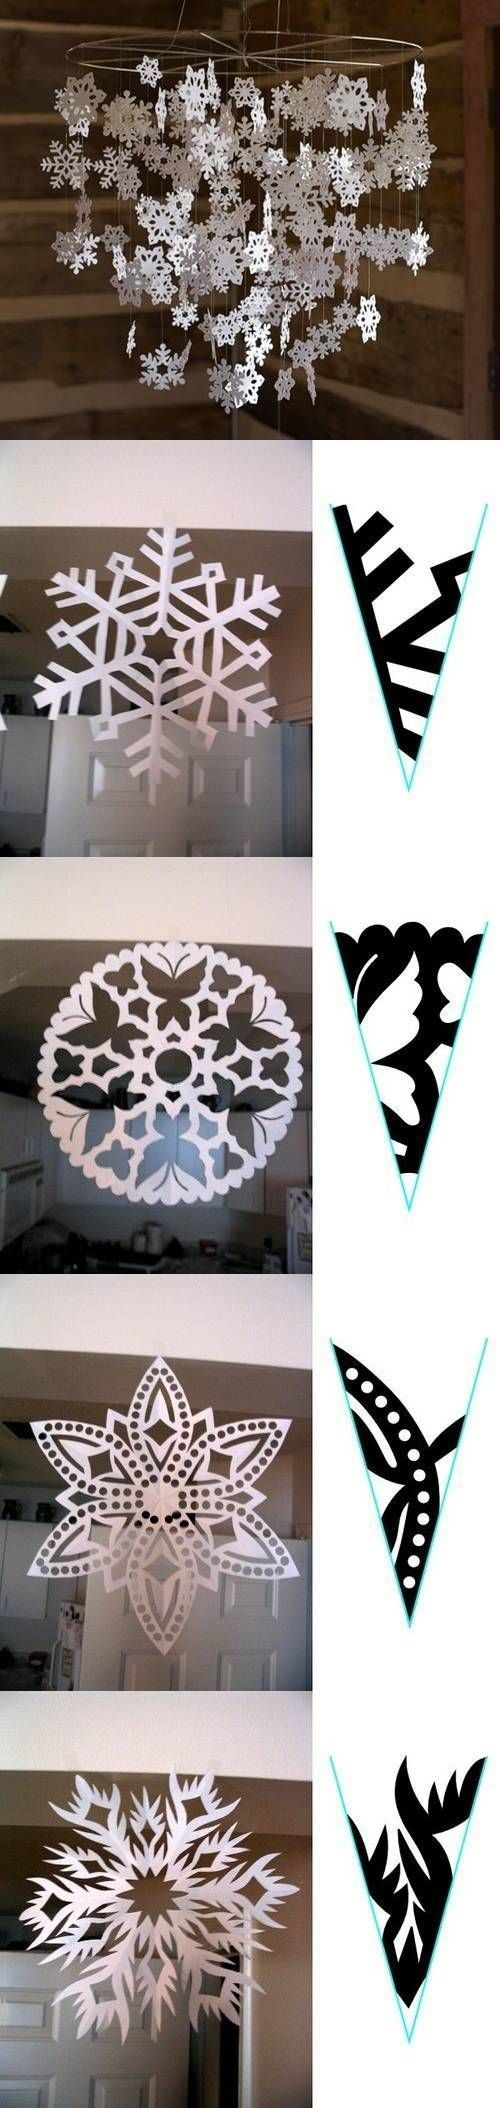 Snowflake patterns...would be pretty to hang from a chandelier or window.: